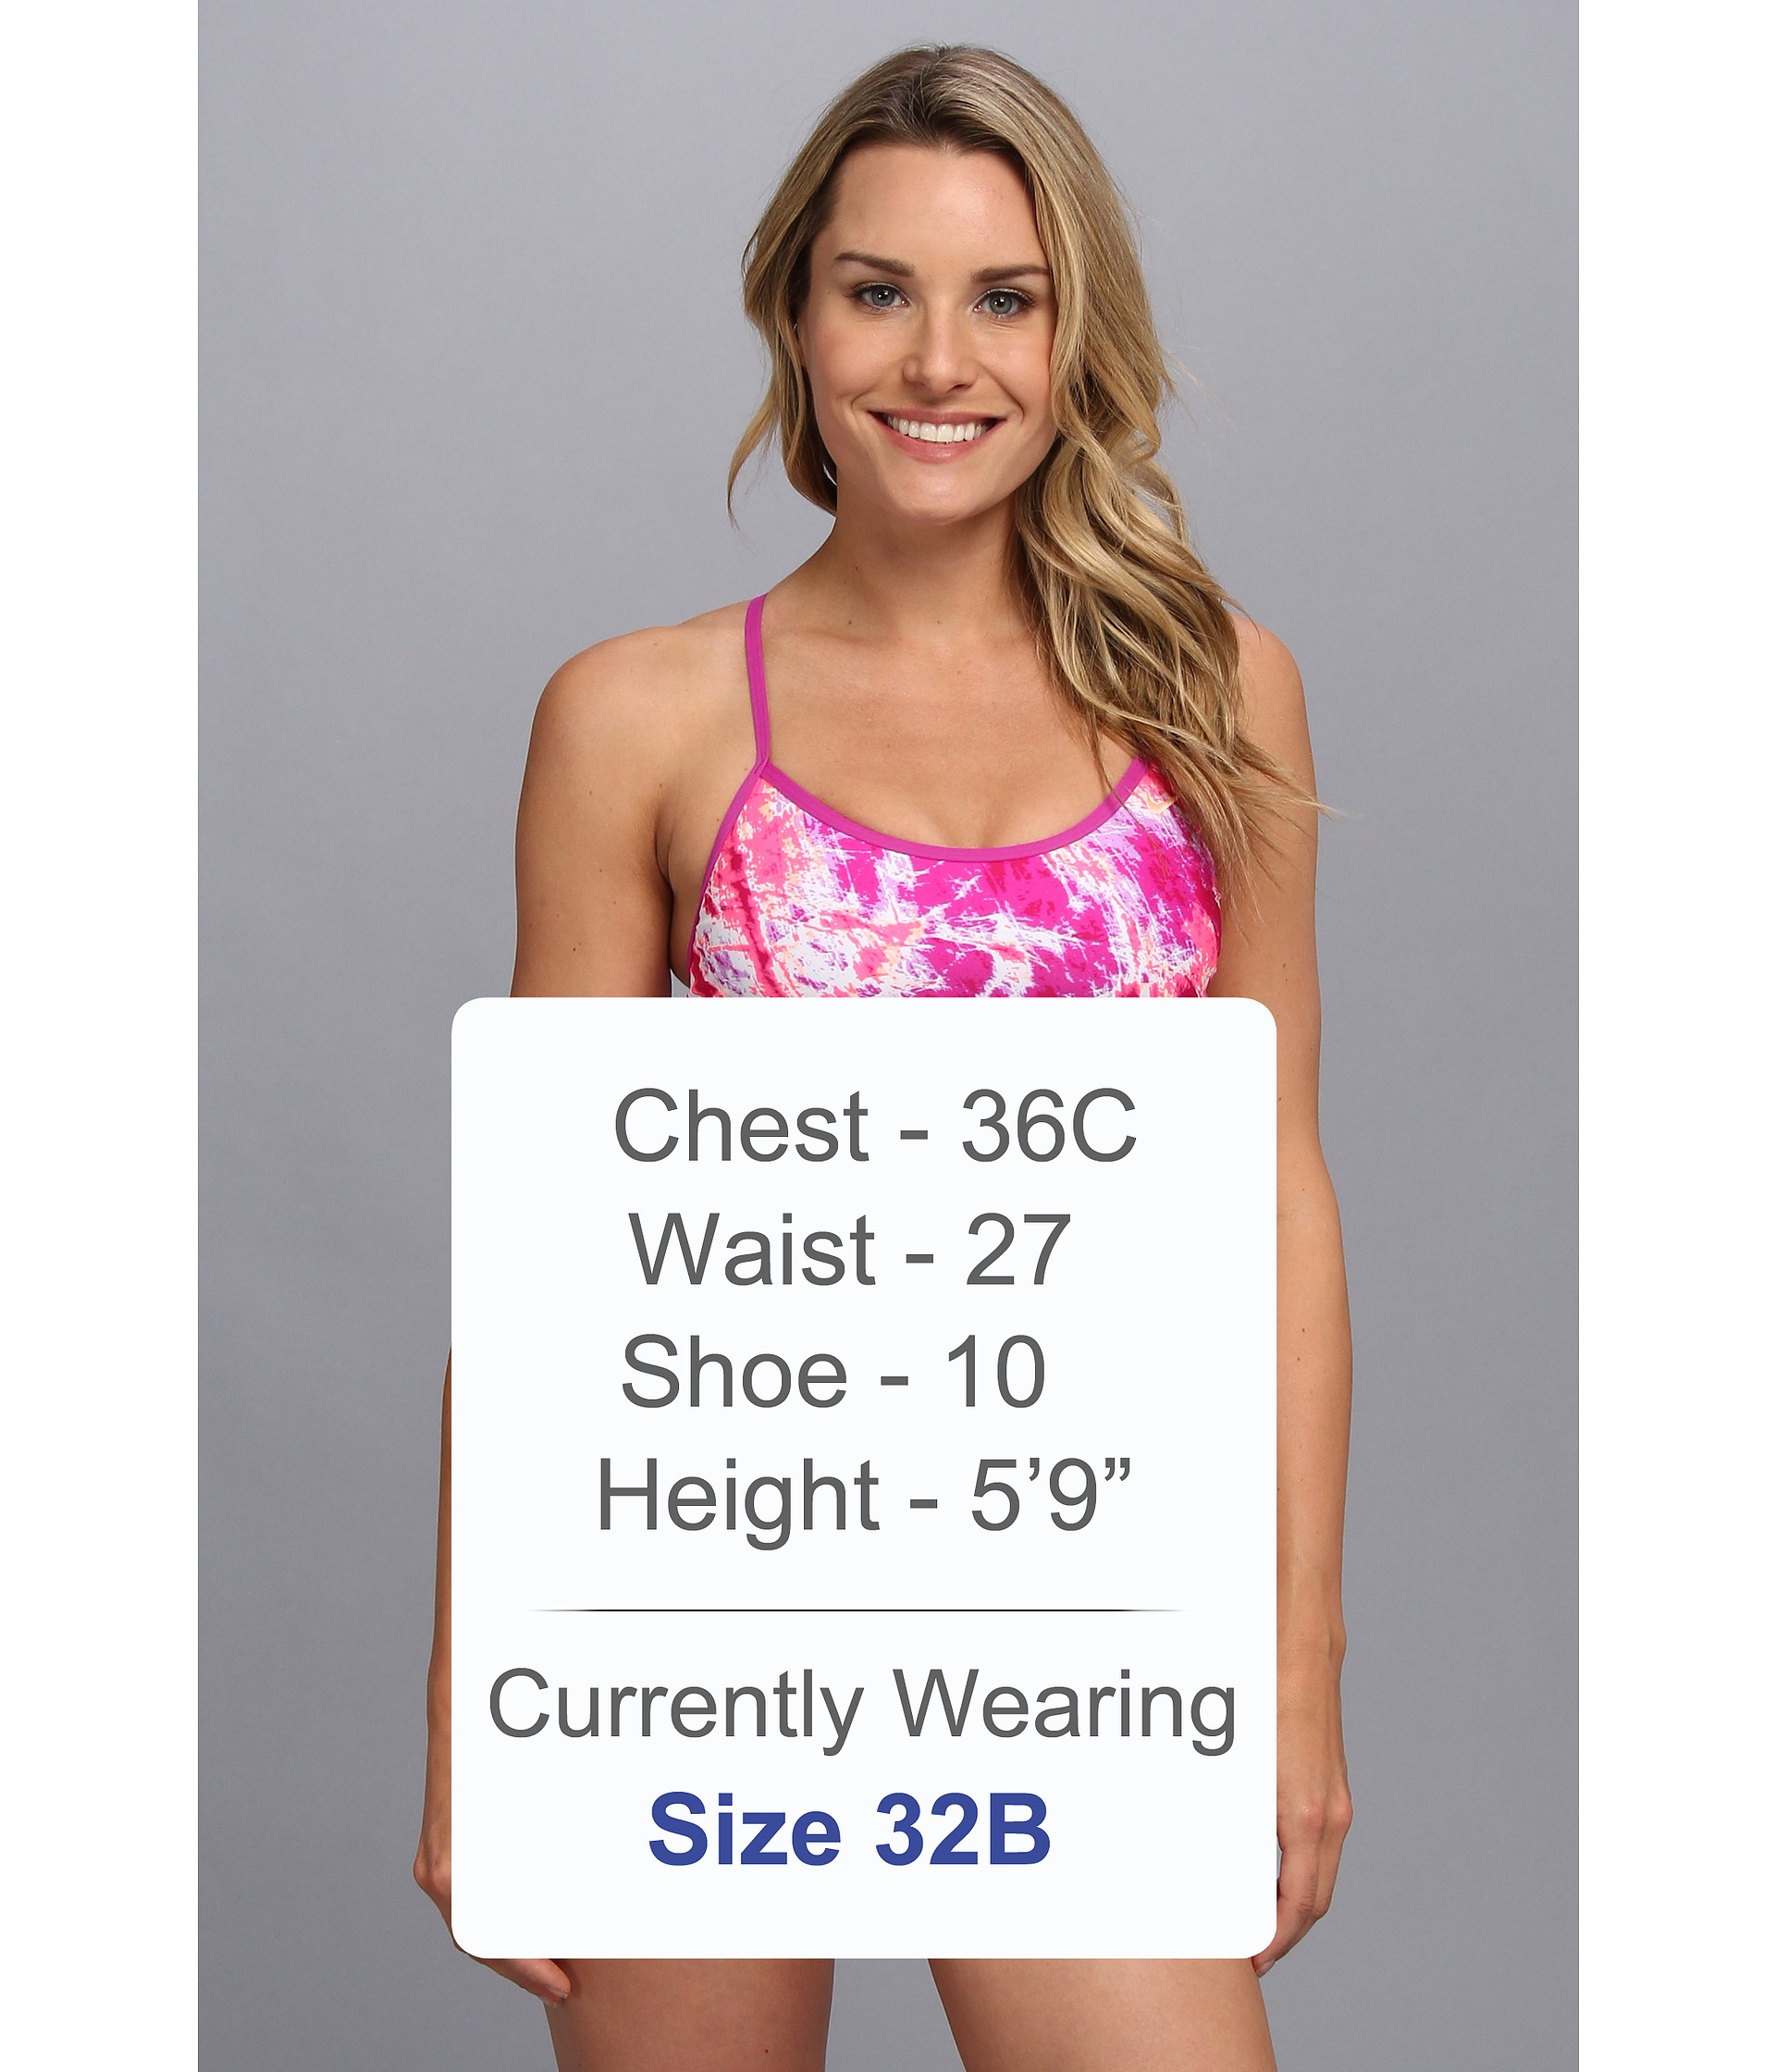 89d468eae4cc4 Lyst - Nike Adjustable Sport Top Two-Piece Swimsuit in Pink